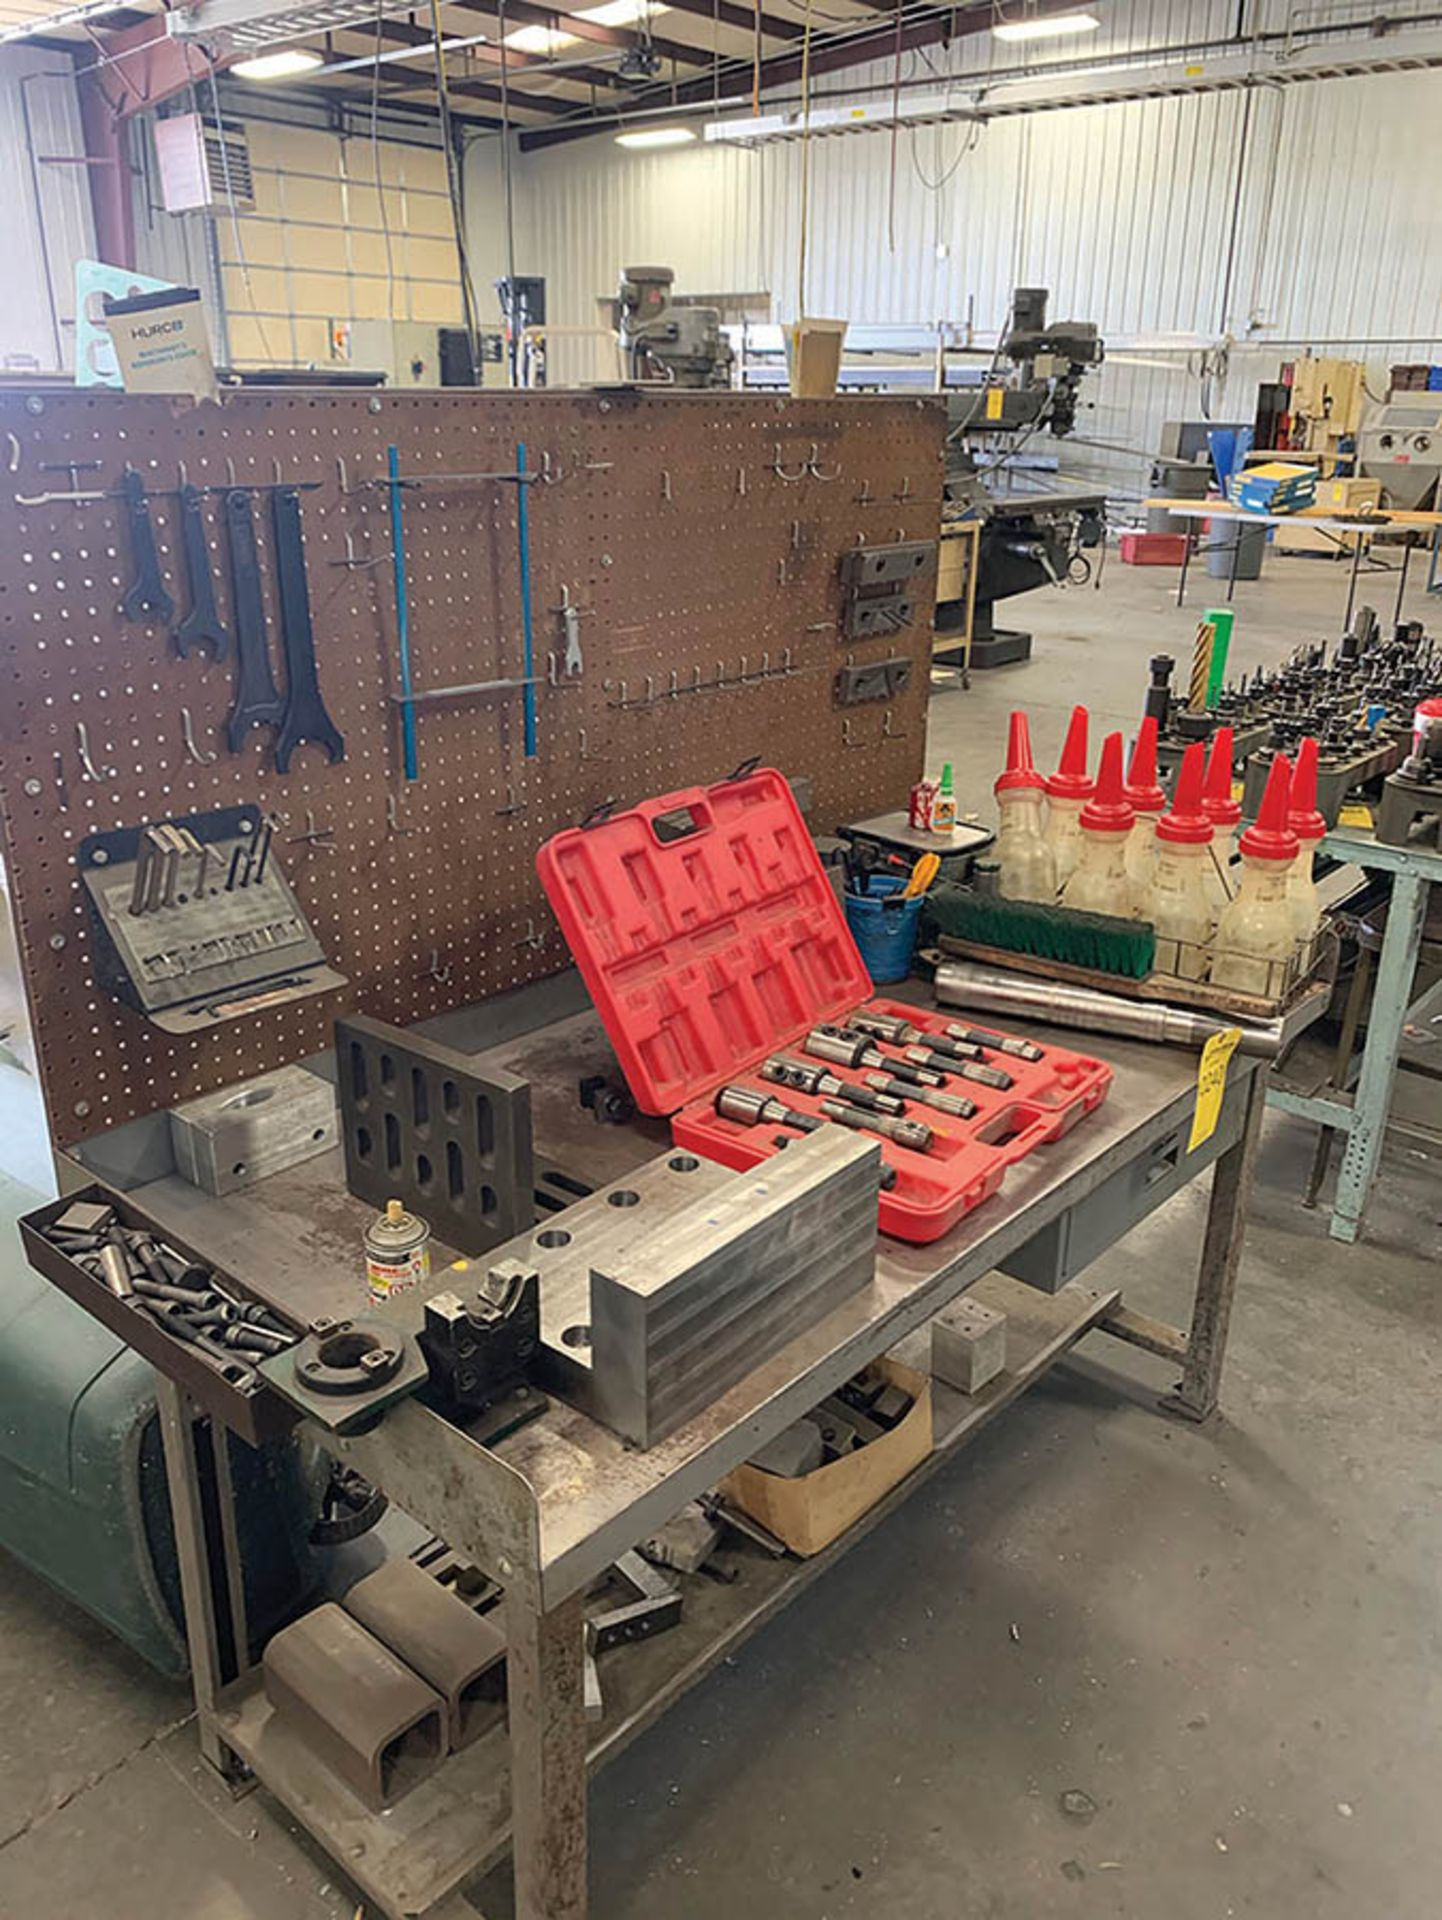 Lot 240 - STEEL WORK BENCH WITH PEGBOARD BACK 5' X 2'